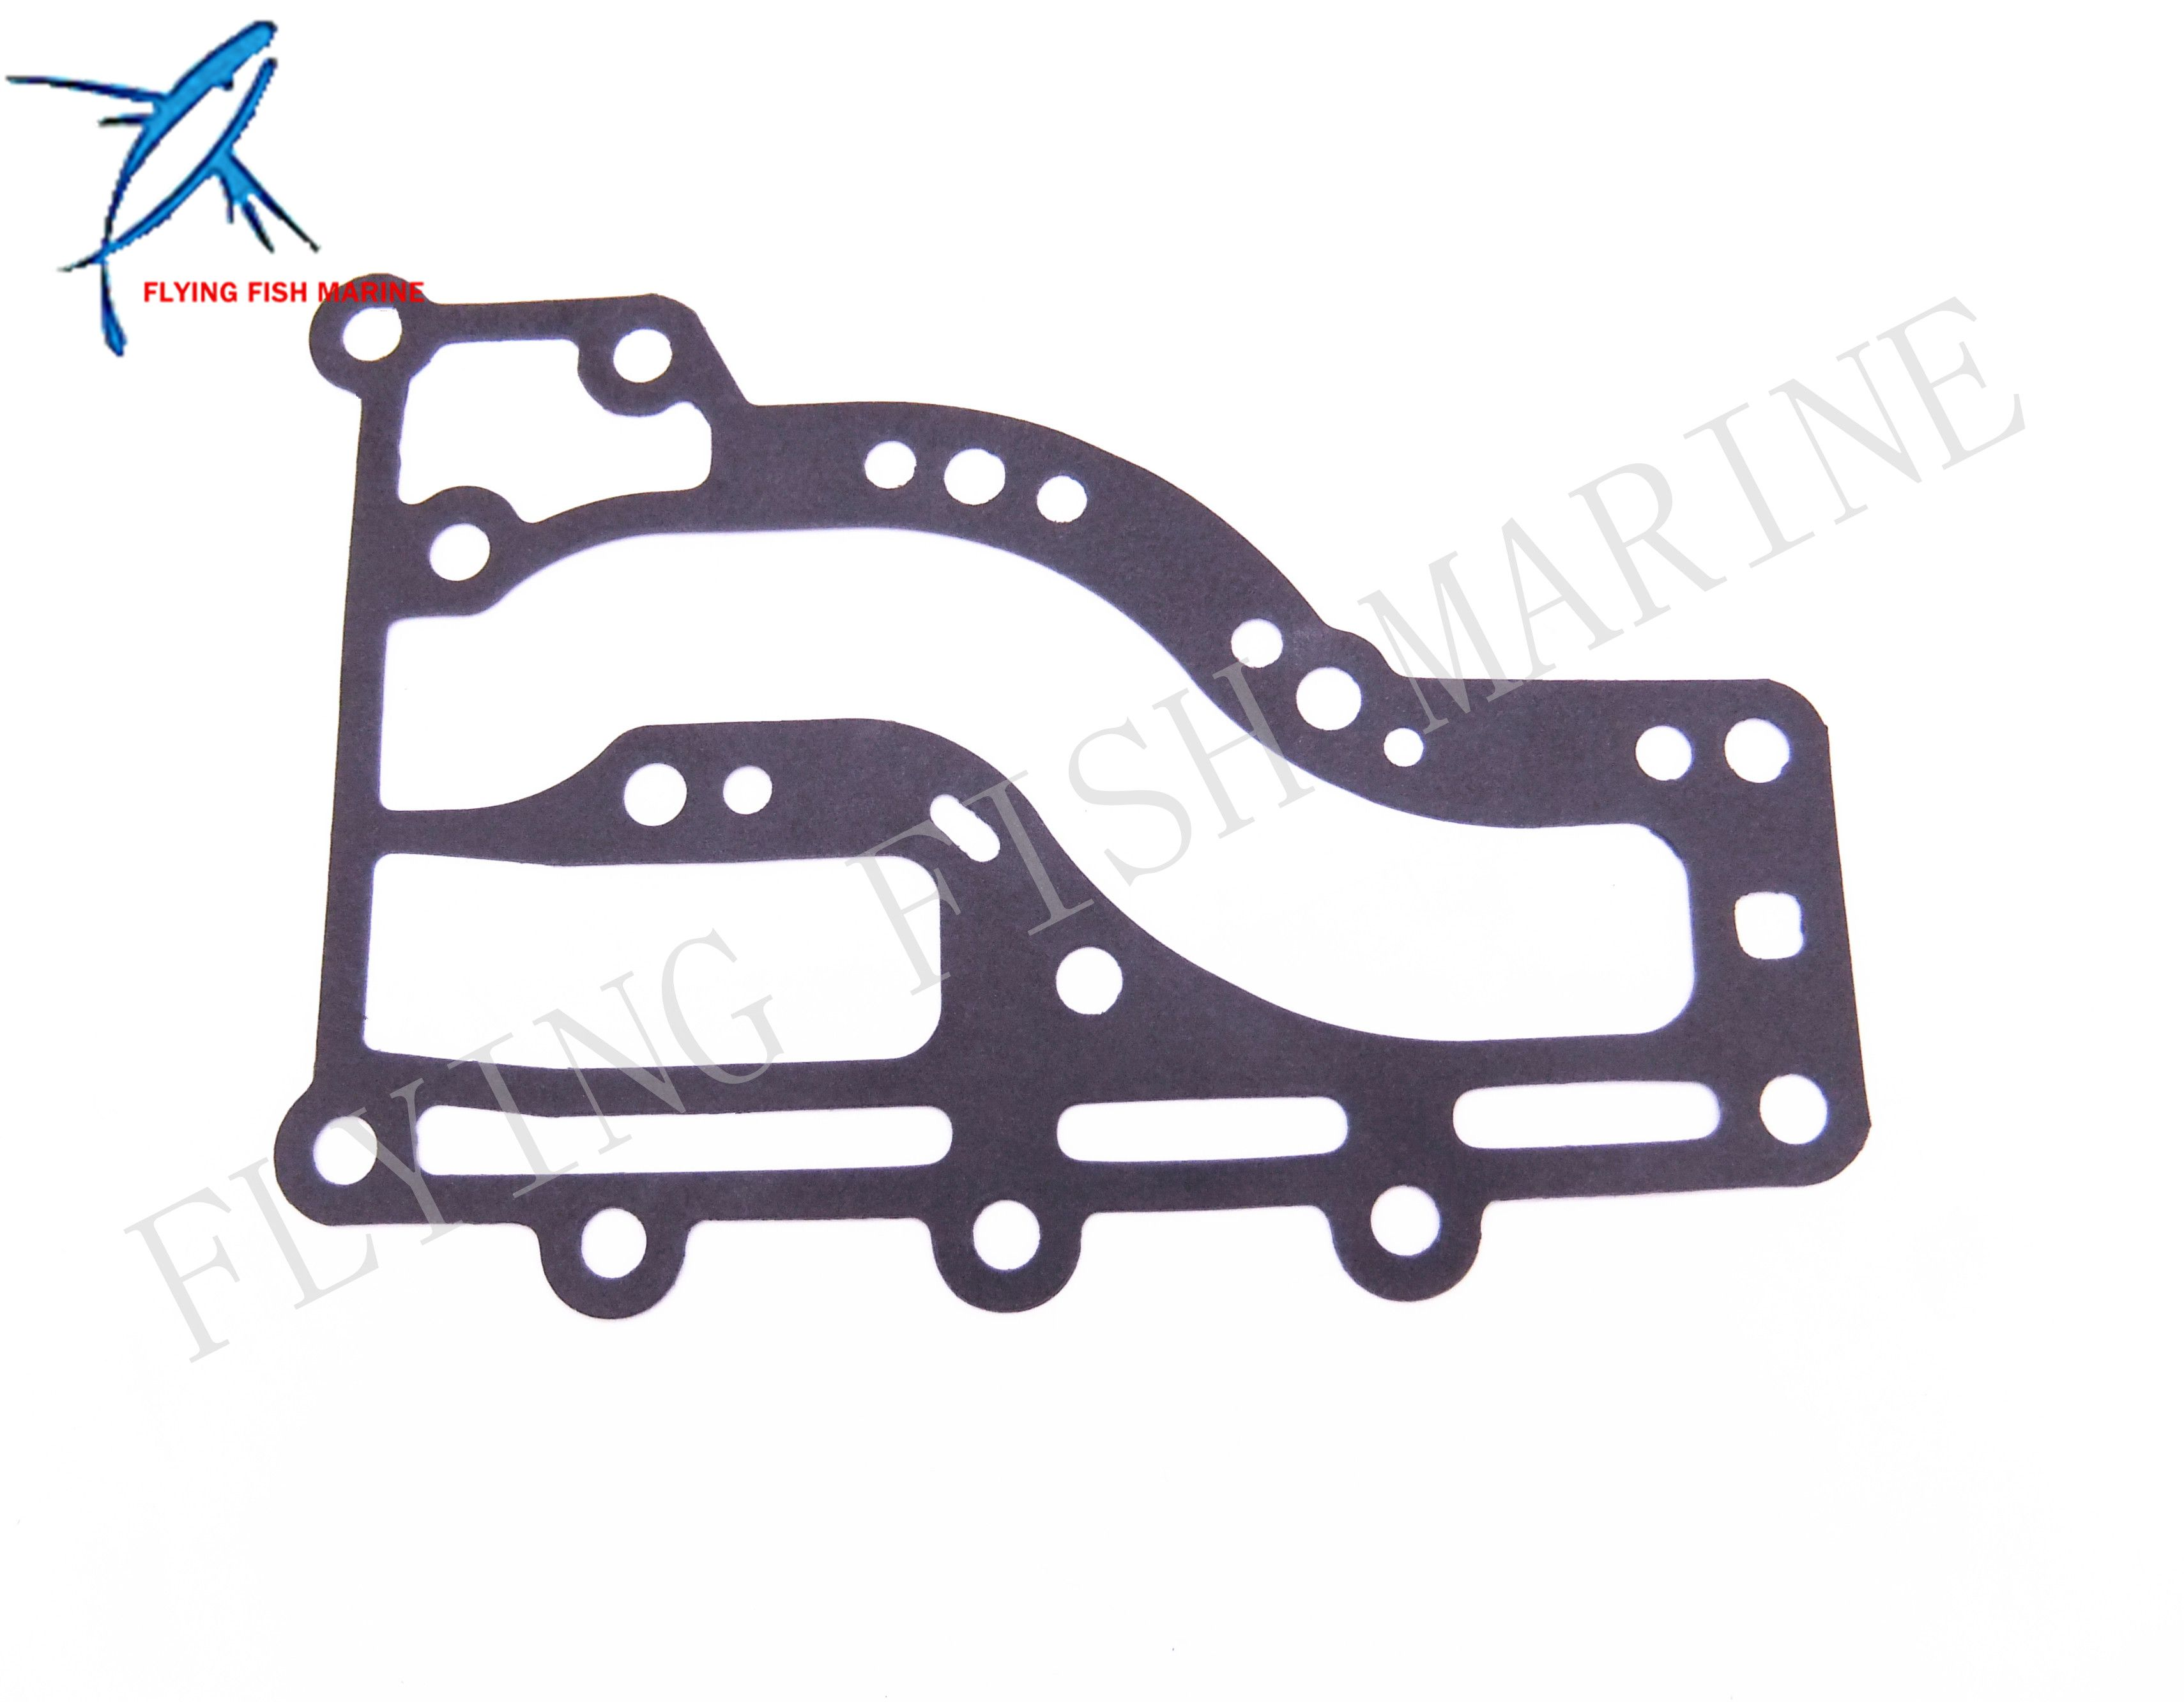 63v 41112 A0 Boat Motor Exhaust Cover Gasket For Yamaha 2 Stroke 9 9hp 15hp Outboard Engine Free Shipping Outboard Boat Vehicle Parts